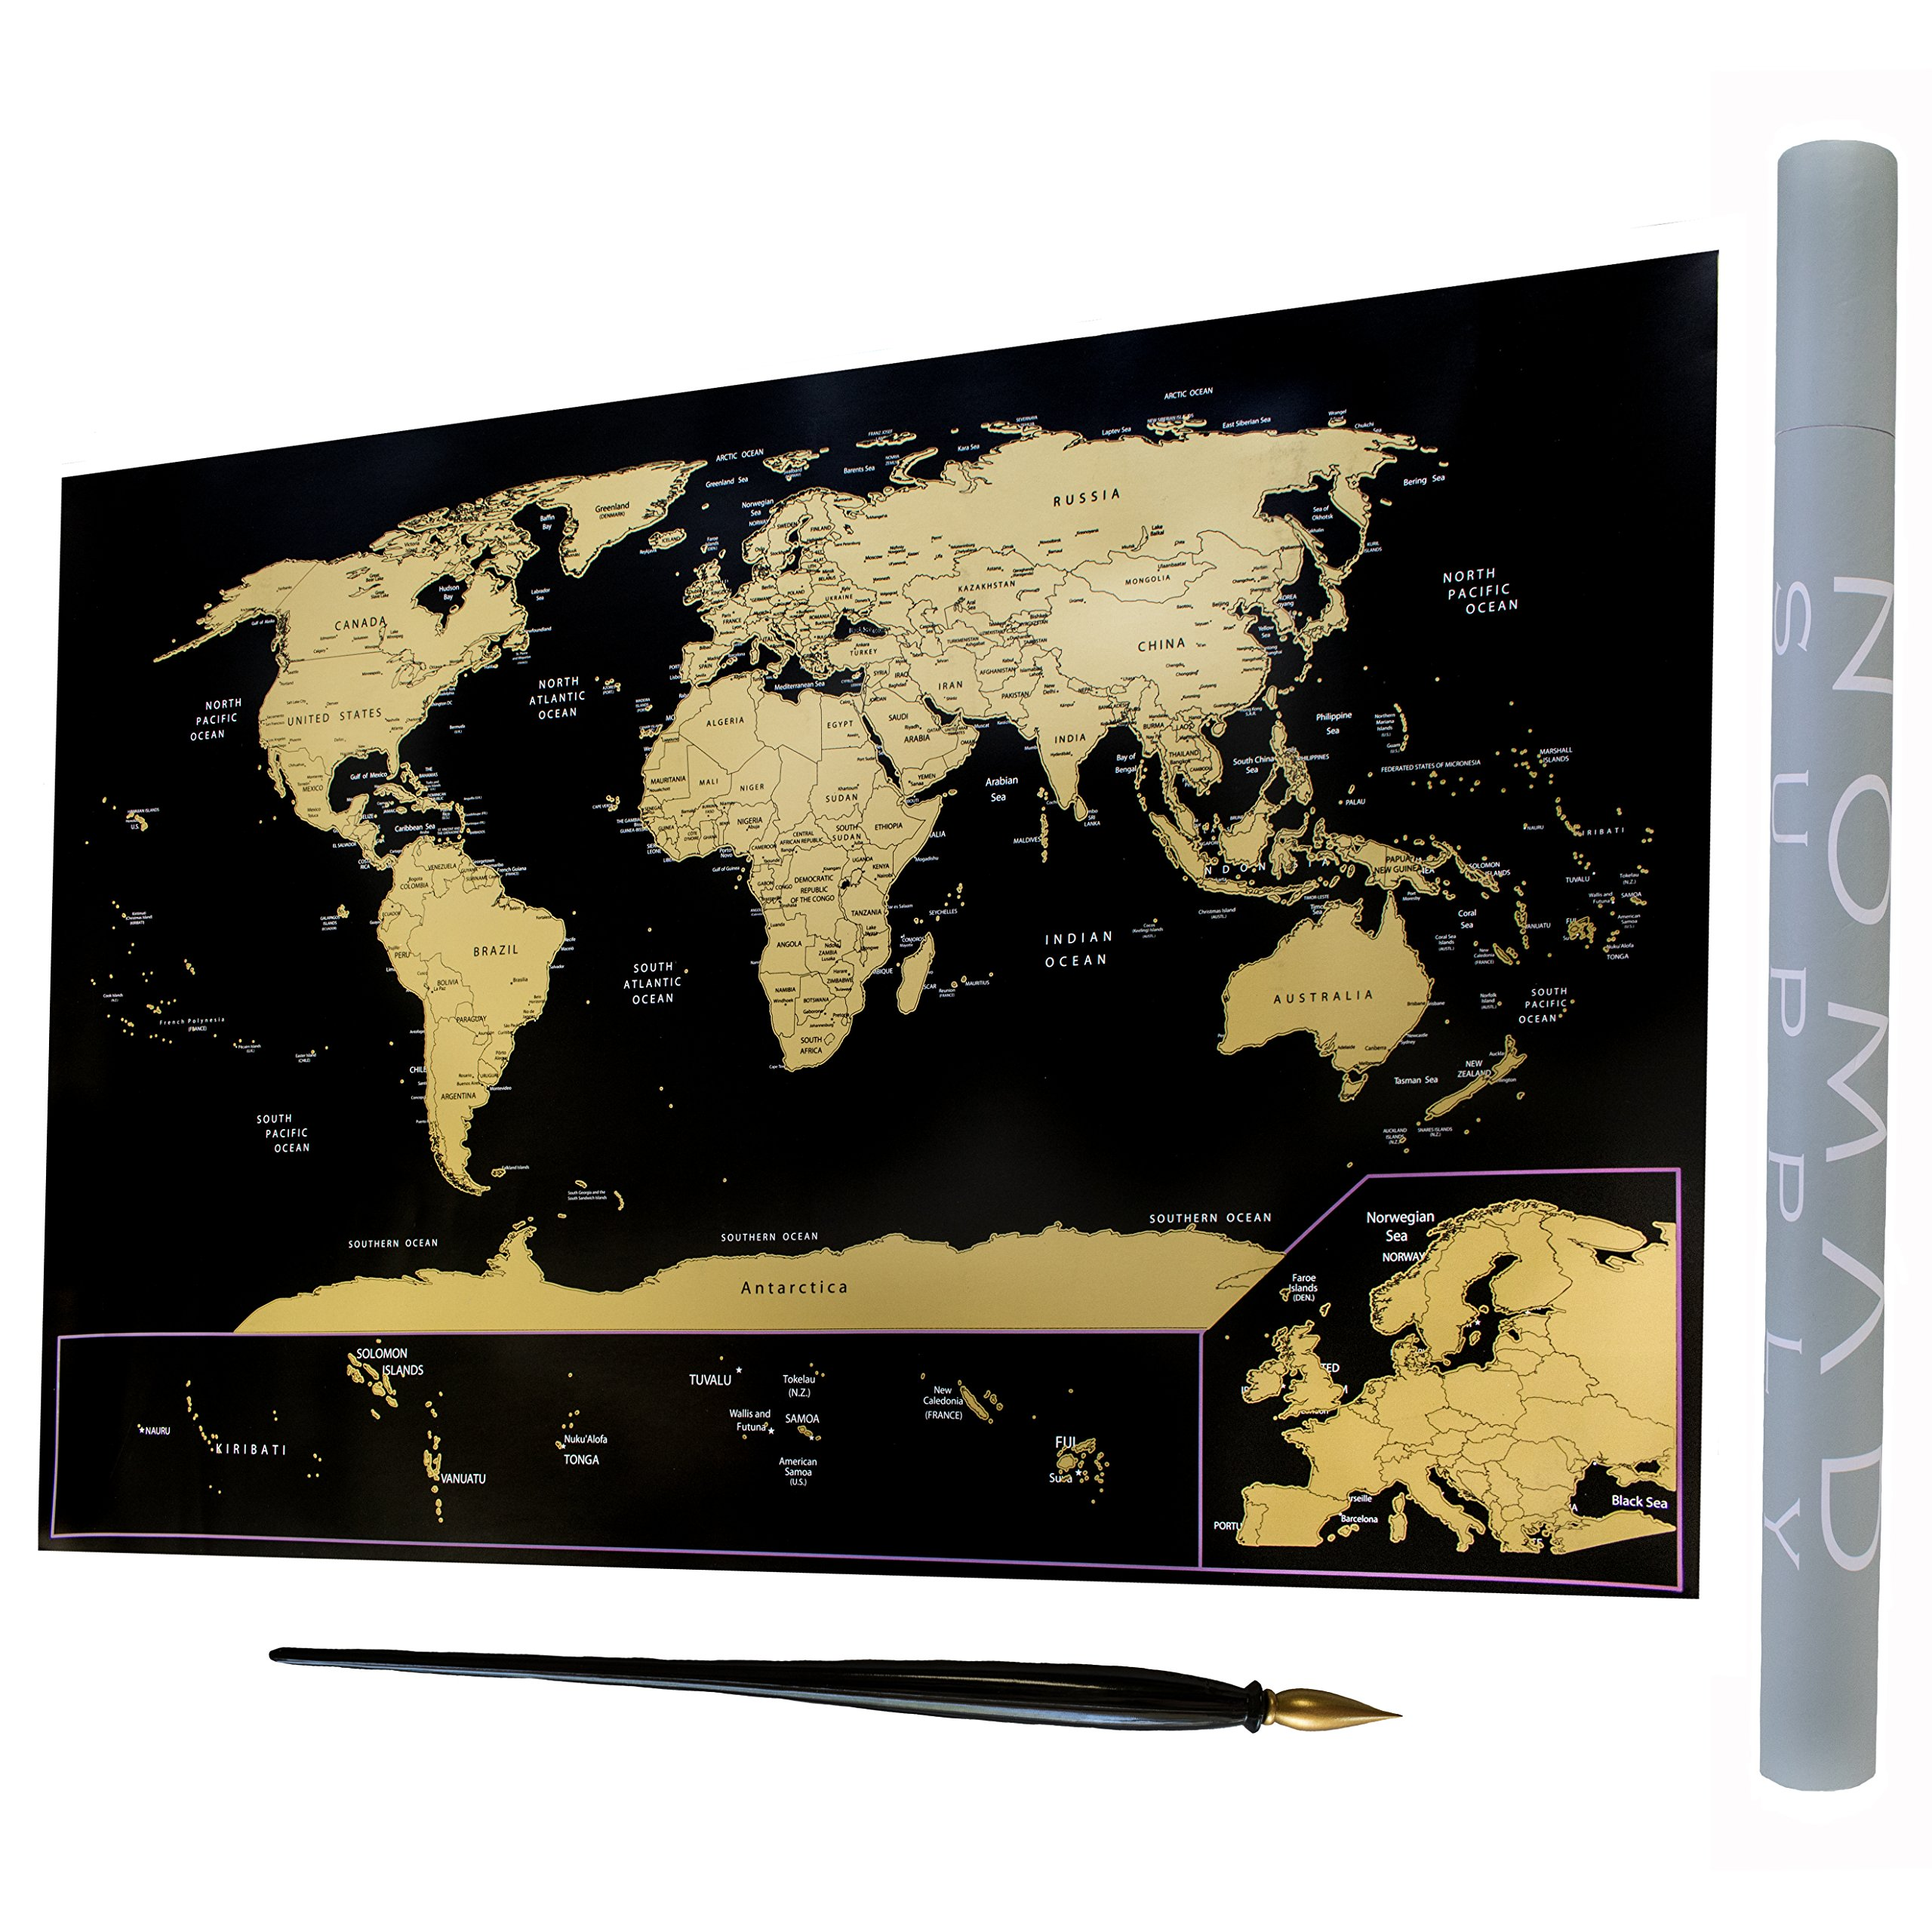 Landmass Scratch Off Map - Travel Map With Enlarged European Countries - Foiling Pen Included - Detailed World Map with Black and Gold Design - Vibrant Colors Underneath - 24x36in Poster of the World,